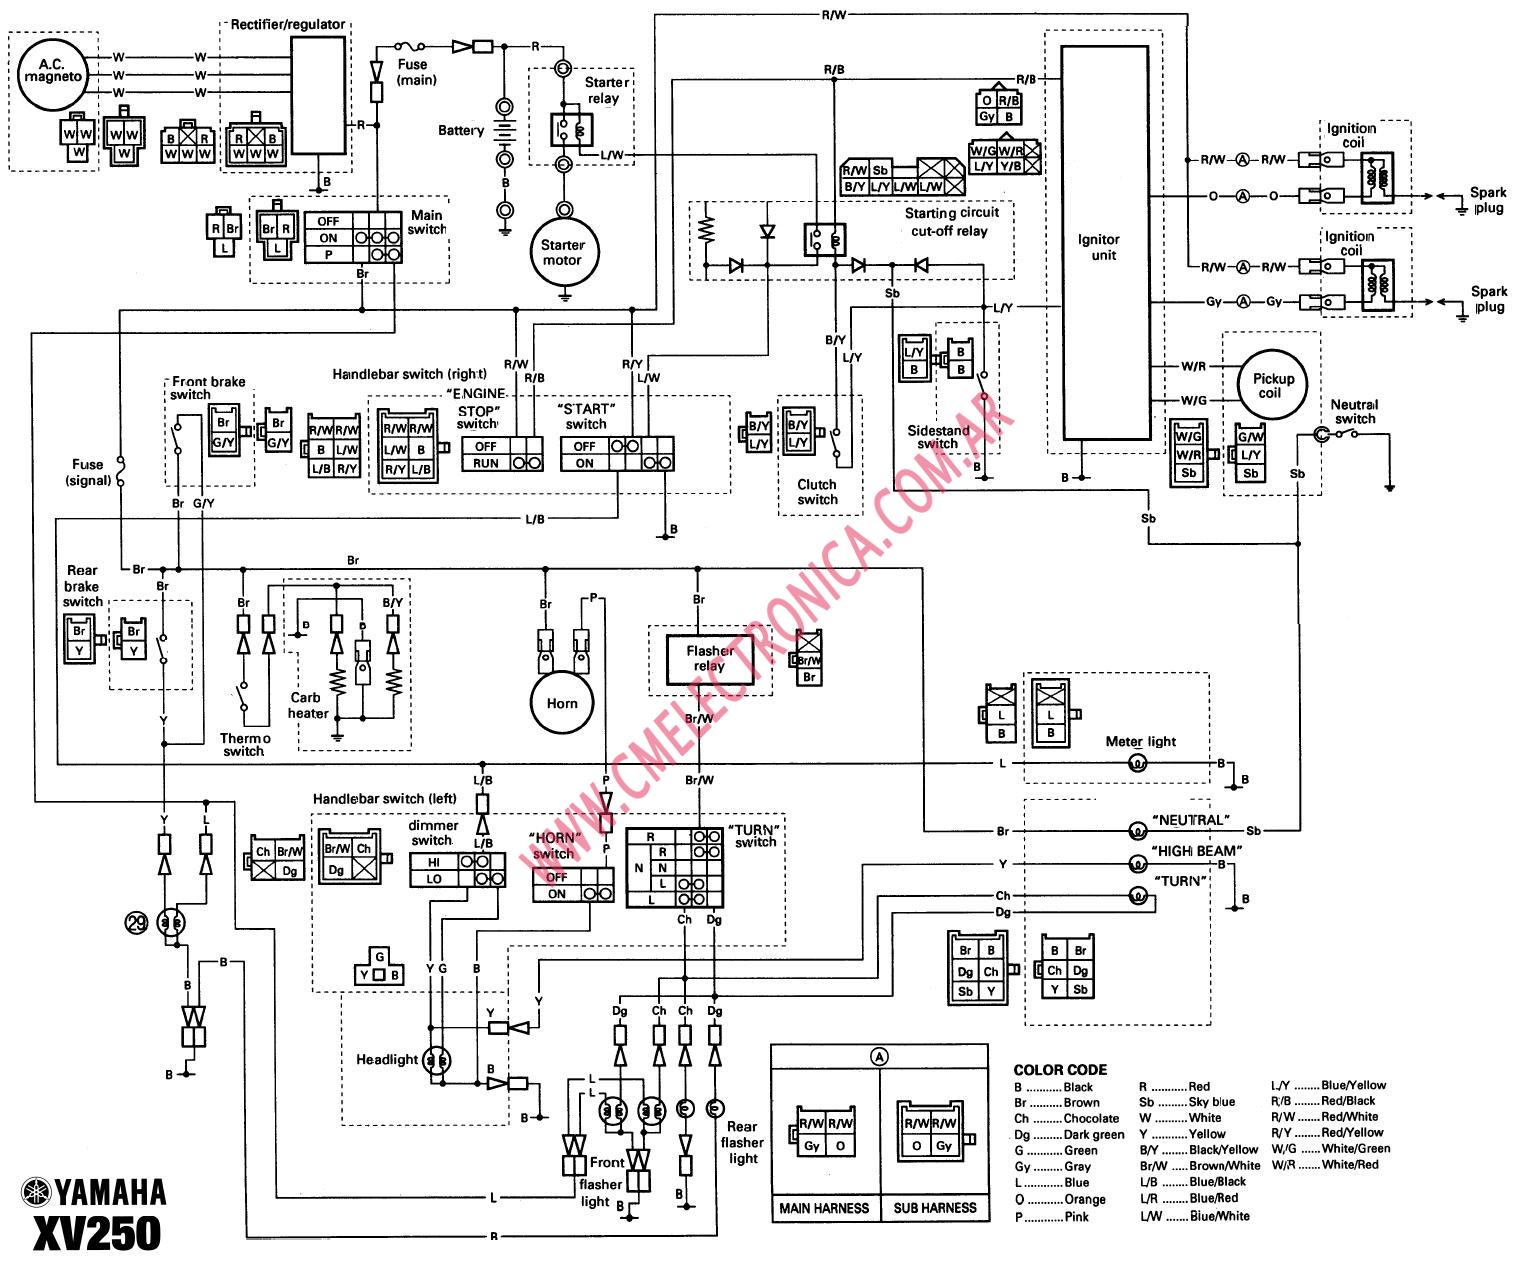 Farmtrac Tractor Electrical Wiring Diagram Craftsman Tractor Wiring Diagram Wiring Diagram ~ ODICIS